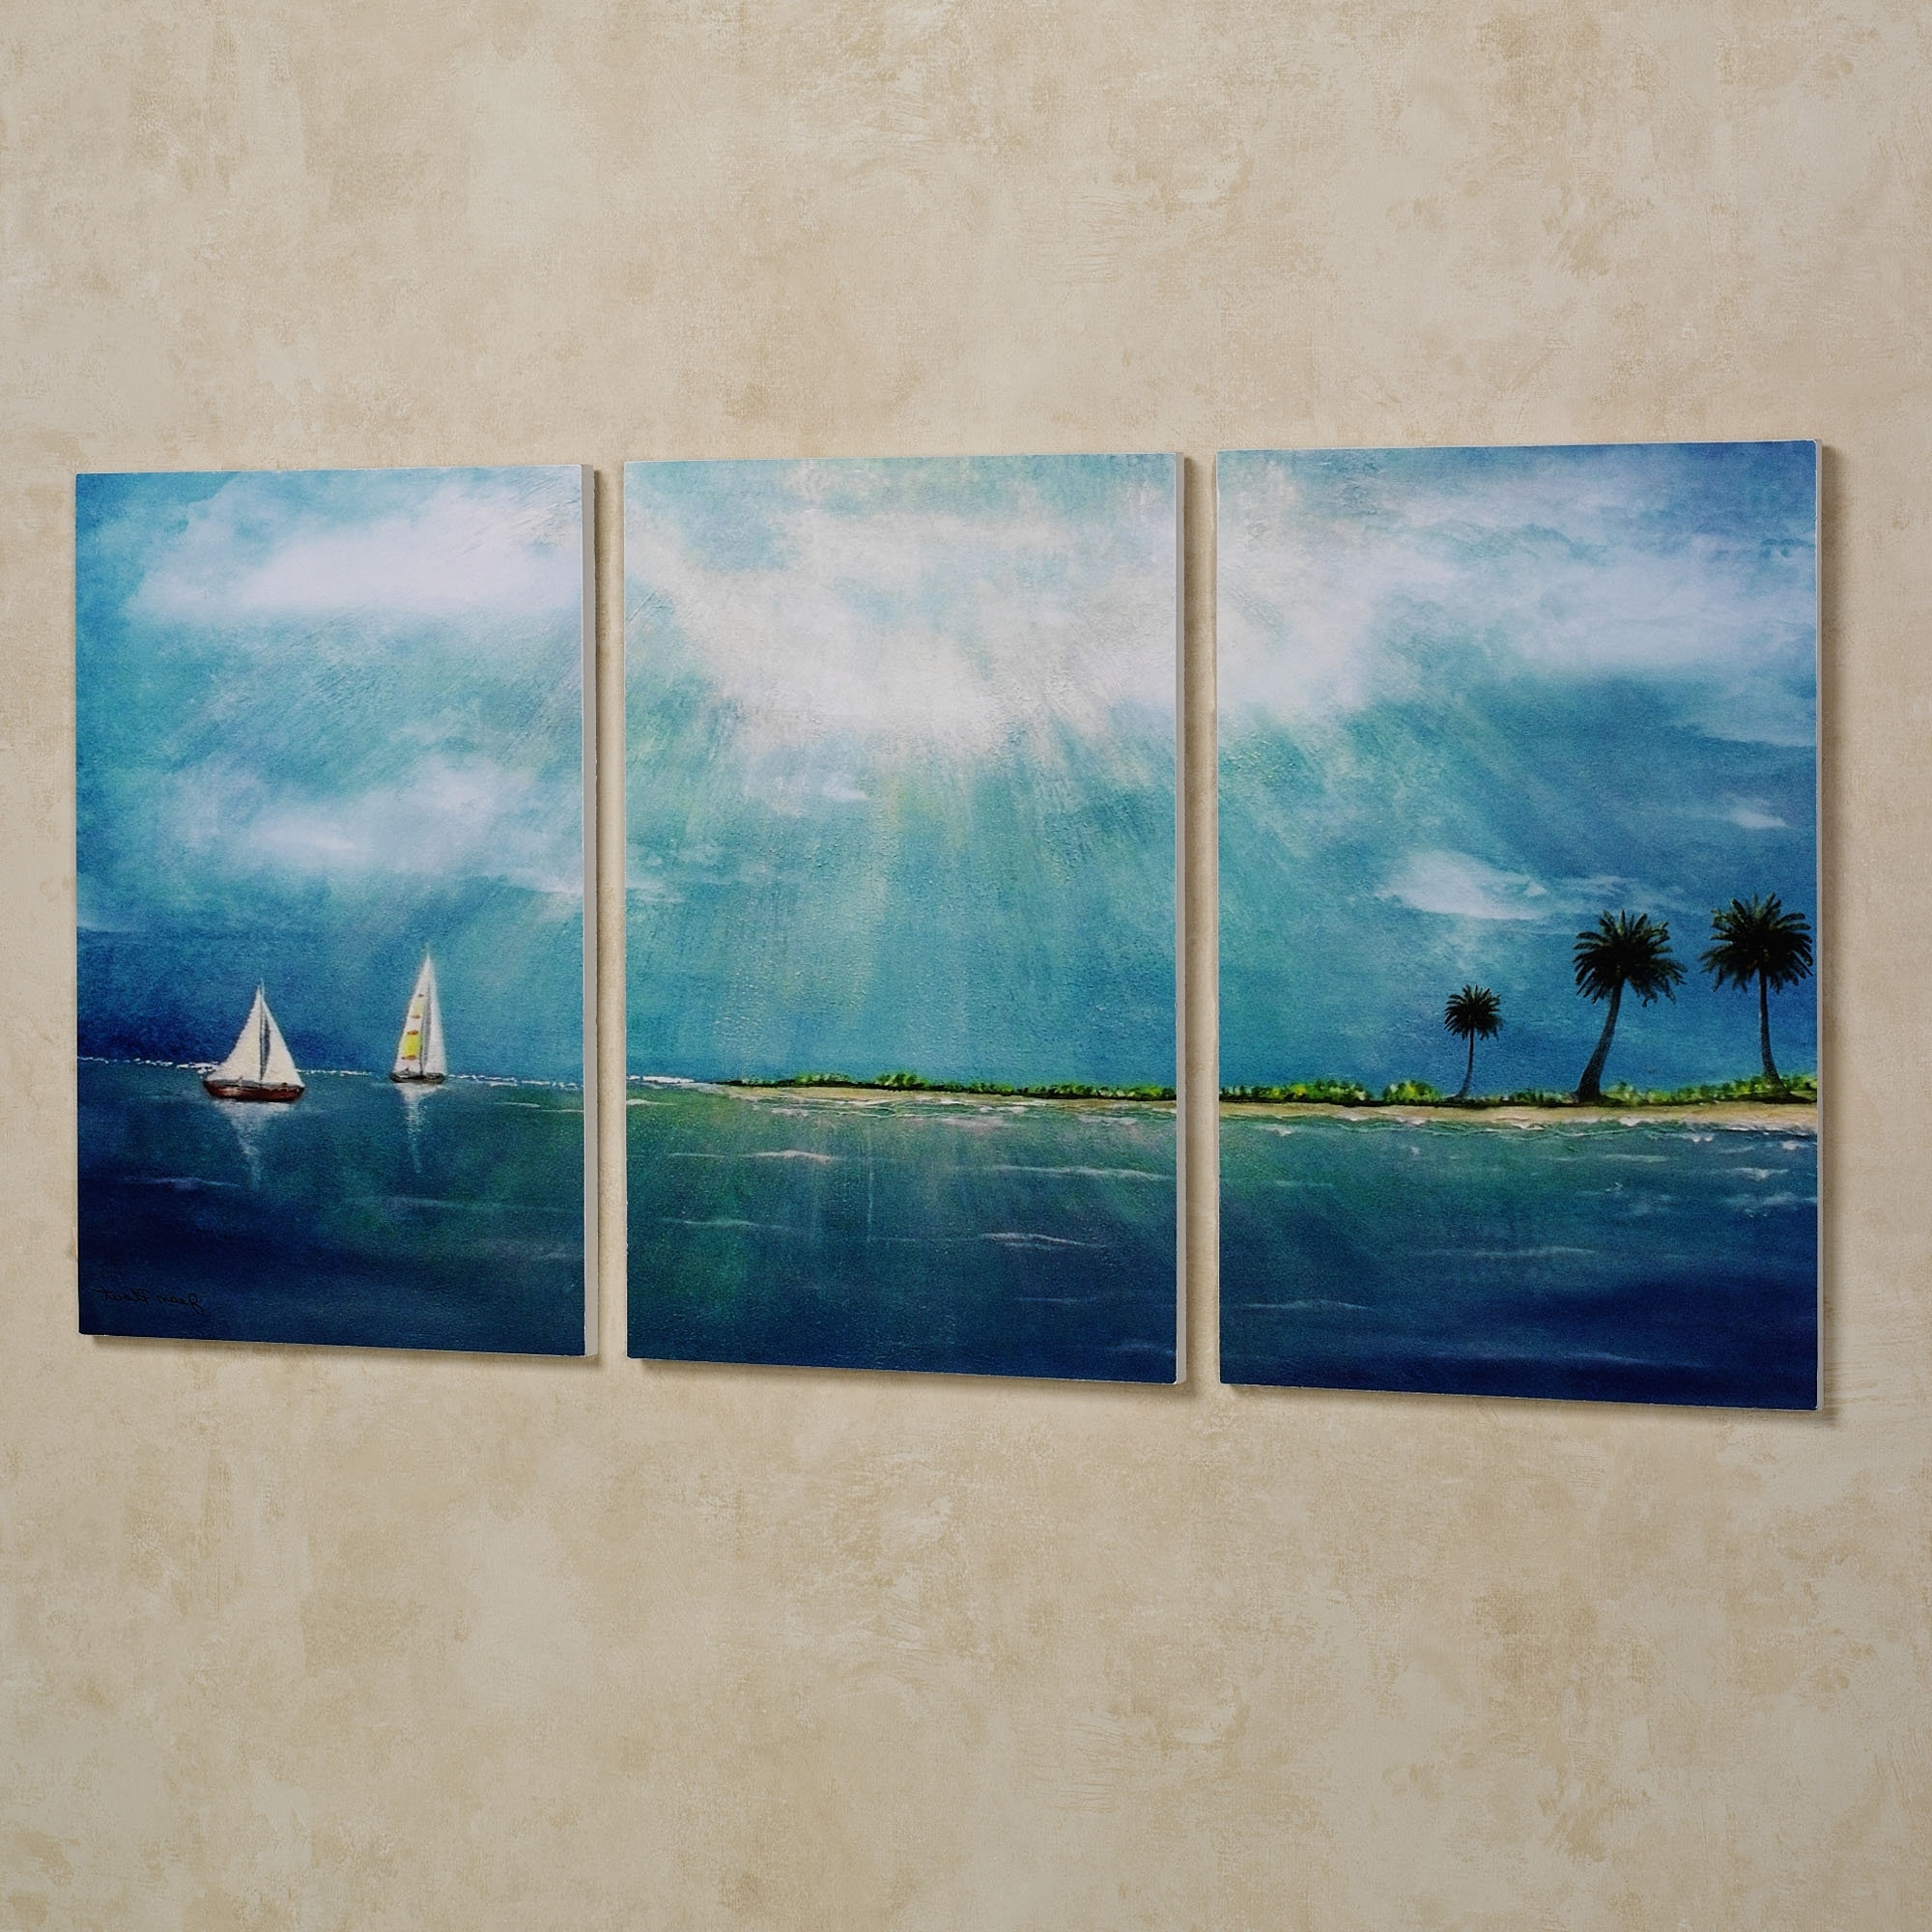 Most Recent Wall Art Designs: Multi Panel Wall Art Blue Triptych Wall Art With Regard To Large Triptych Wall Art (View 4 of 15)